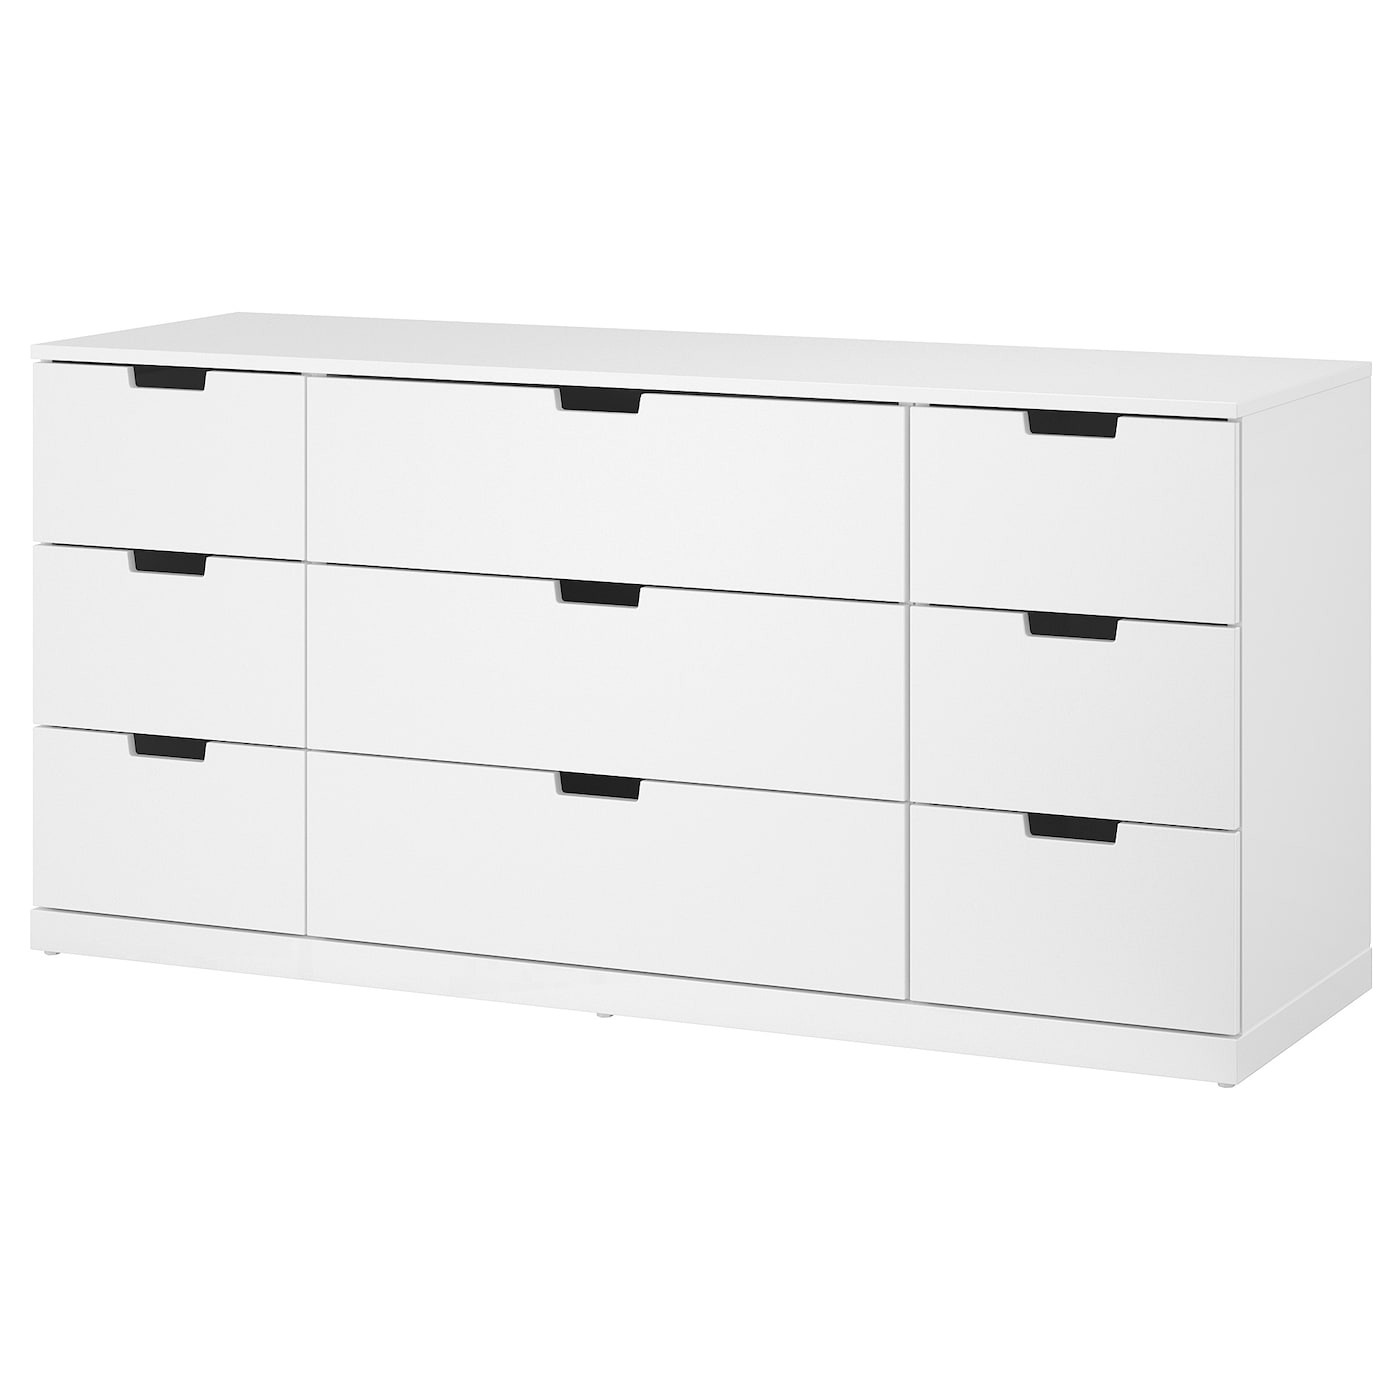 nordli commode 9 tiroirs blanc 160 x 76 cm ikea. Black Bedroom Furniture Sets. Home Design Ideas